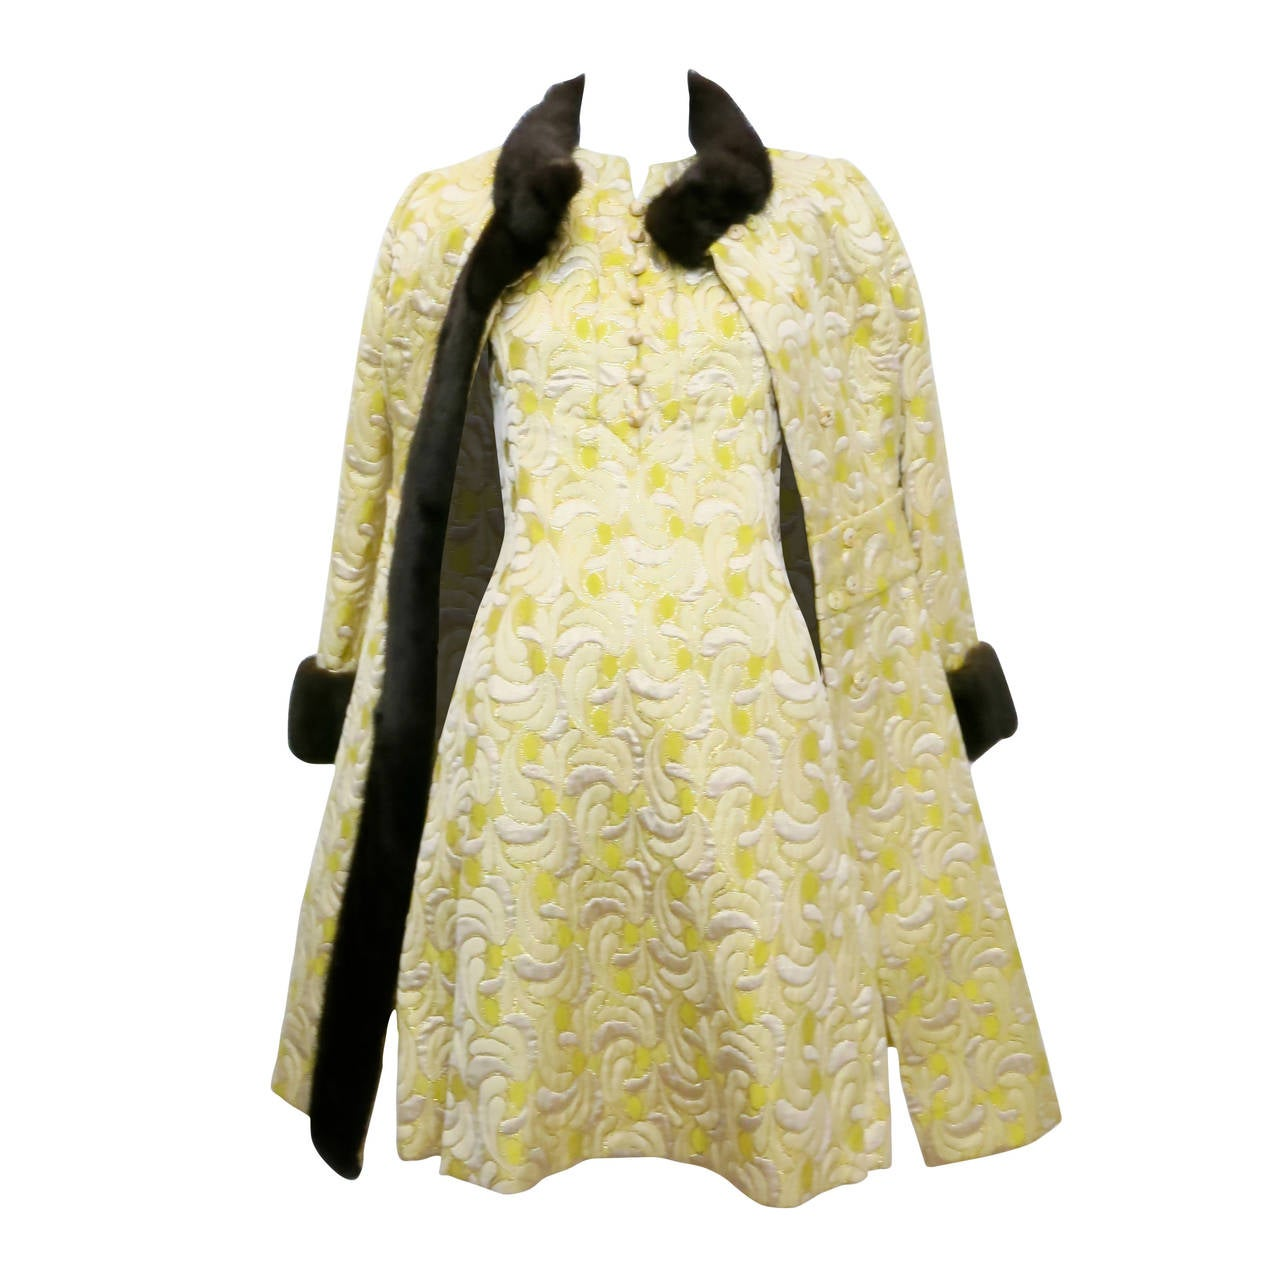 1960s Yellow and Gold Damask Dress and Coat Ensemble with Mink Trim For Sale